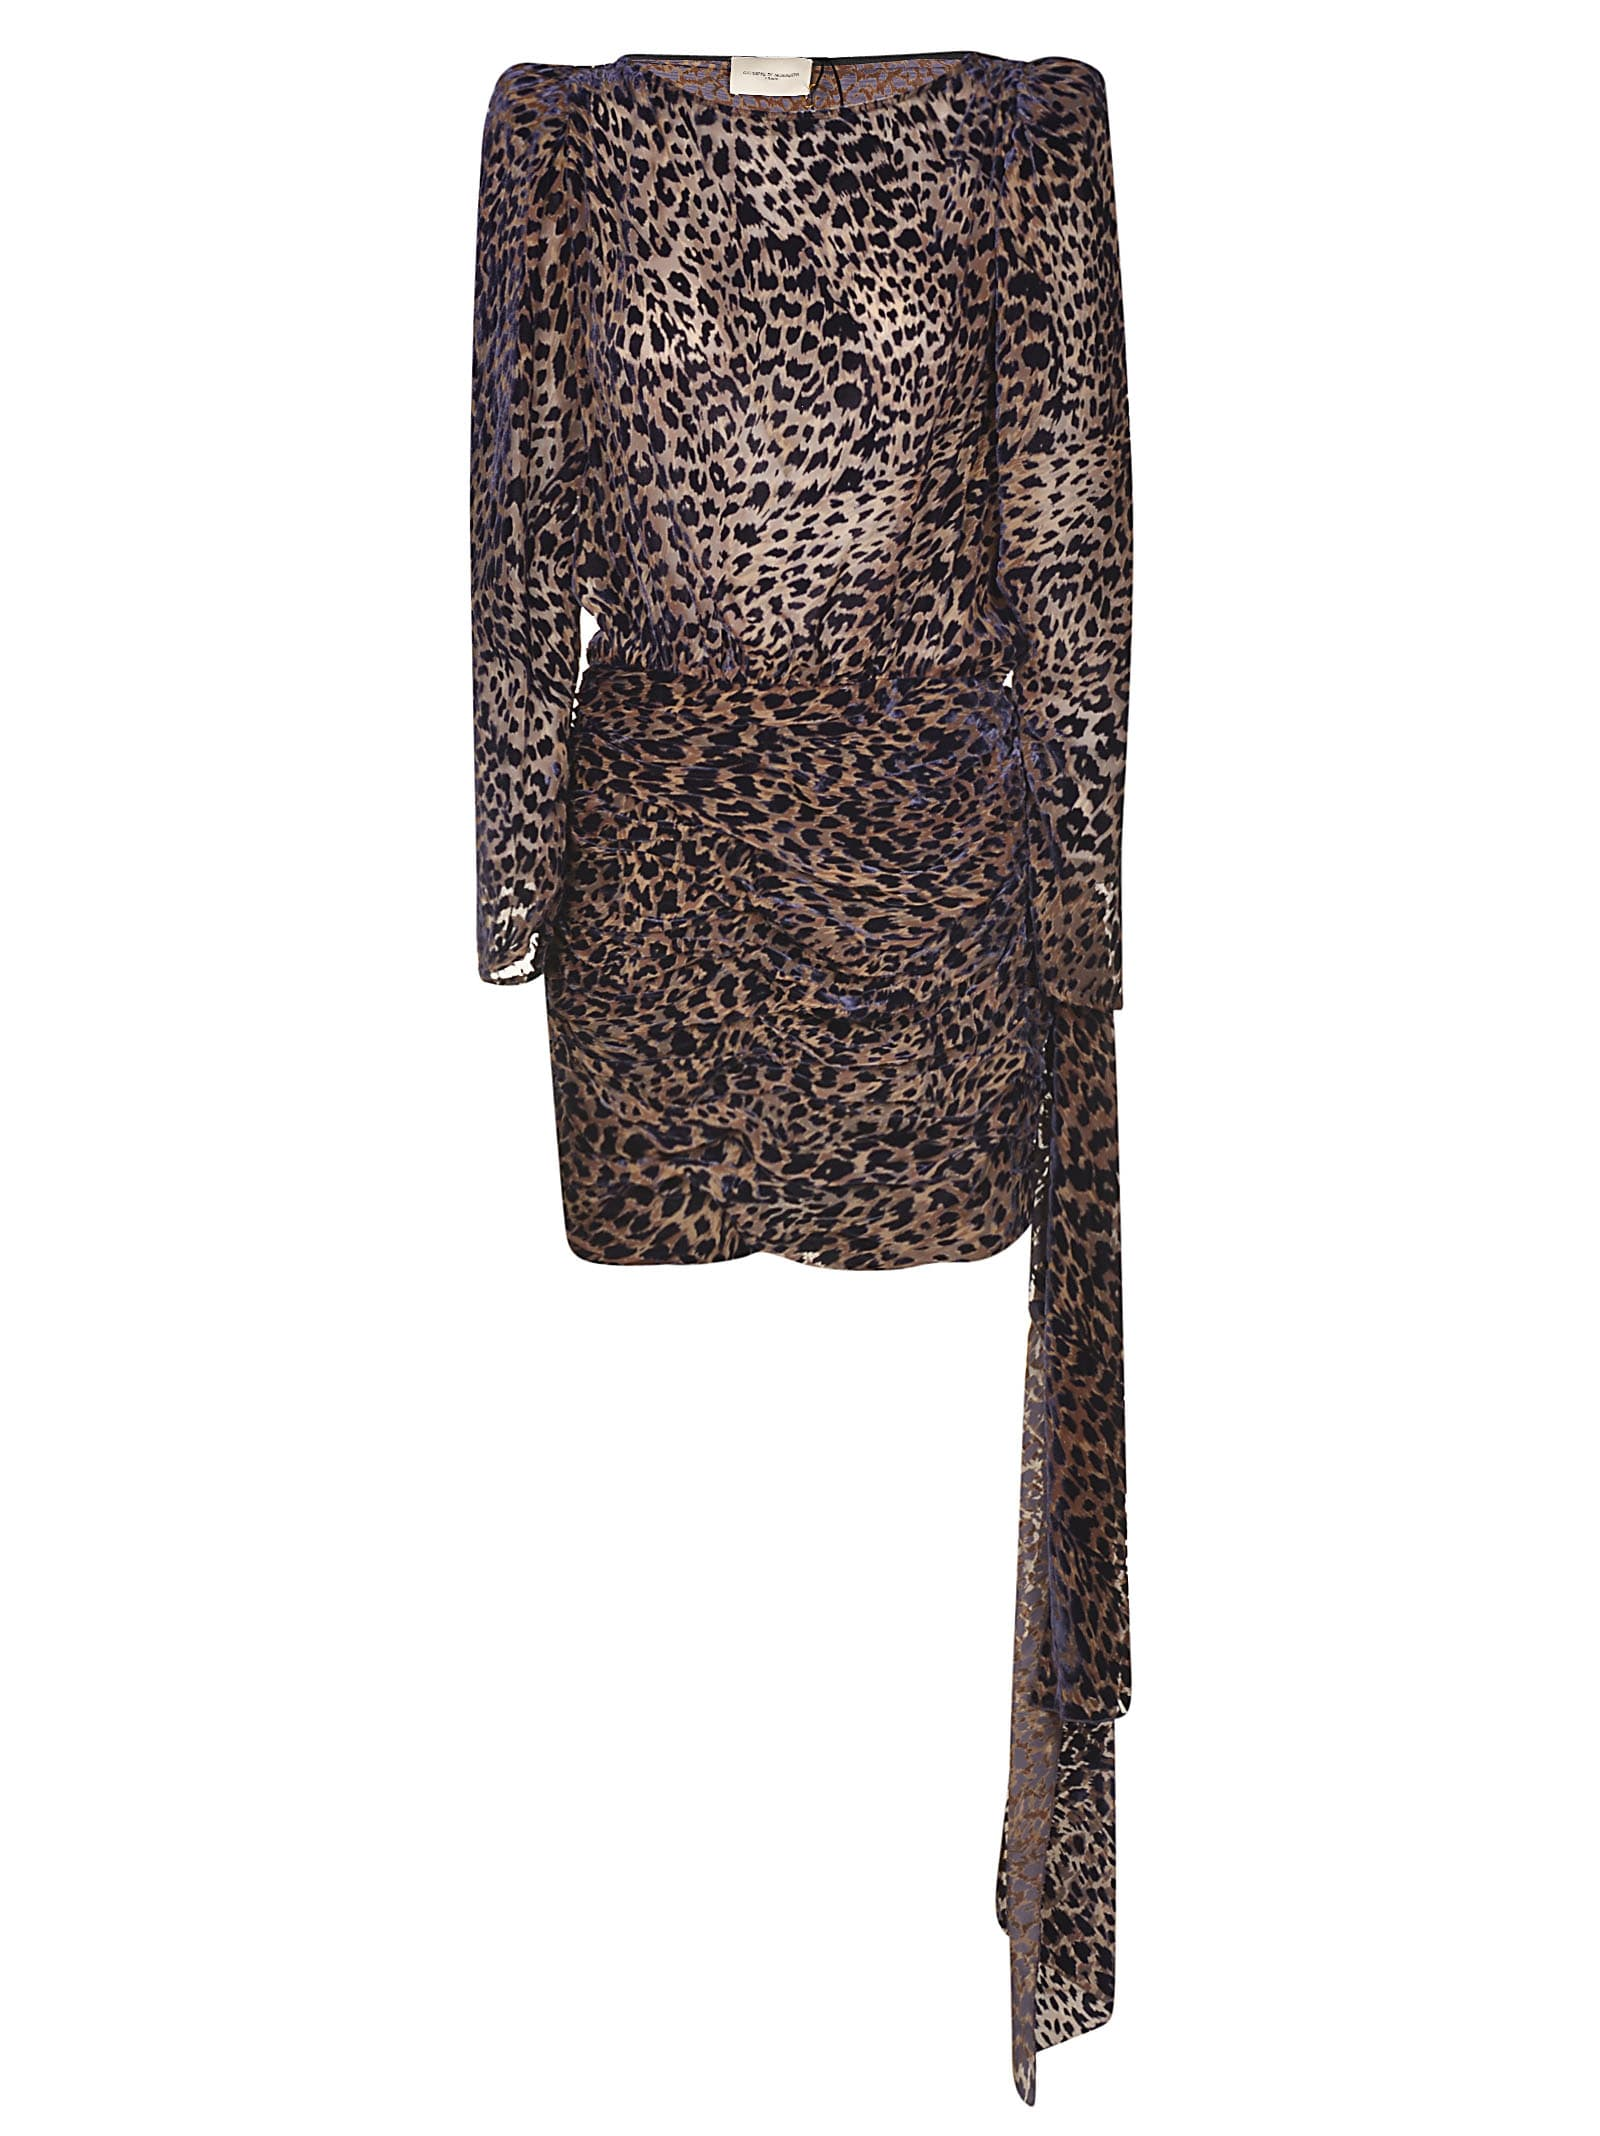 Giuseppe di Morabito Animal Print Dress